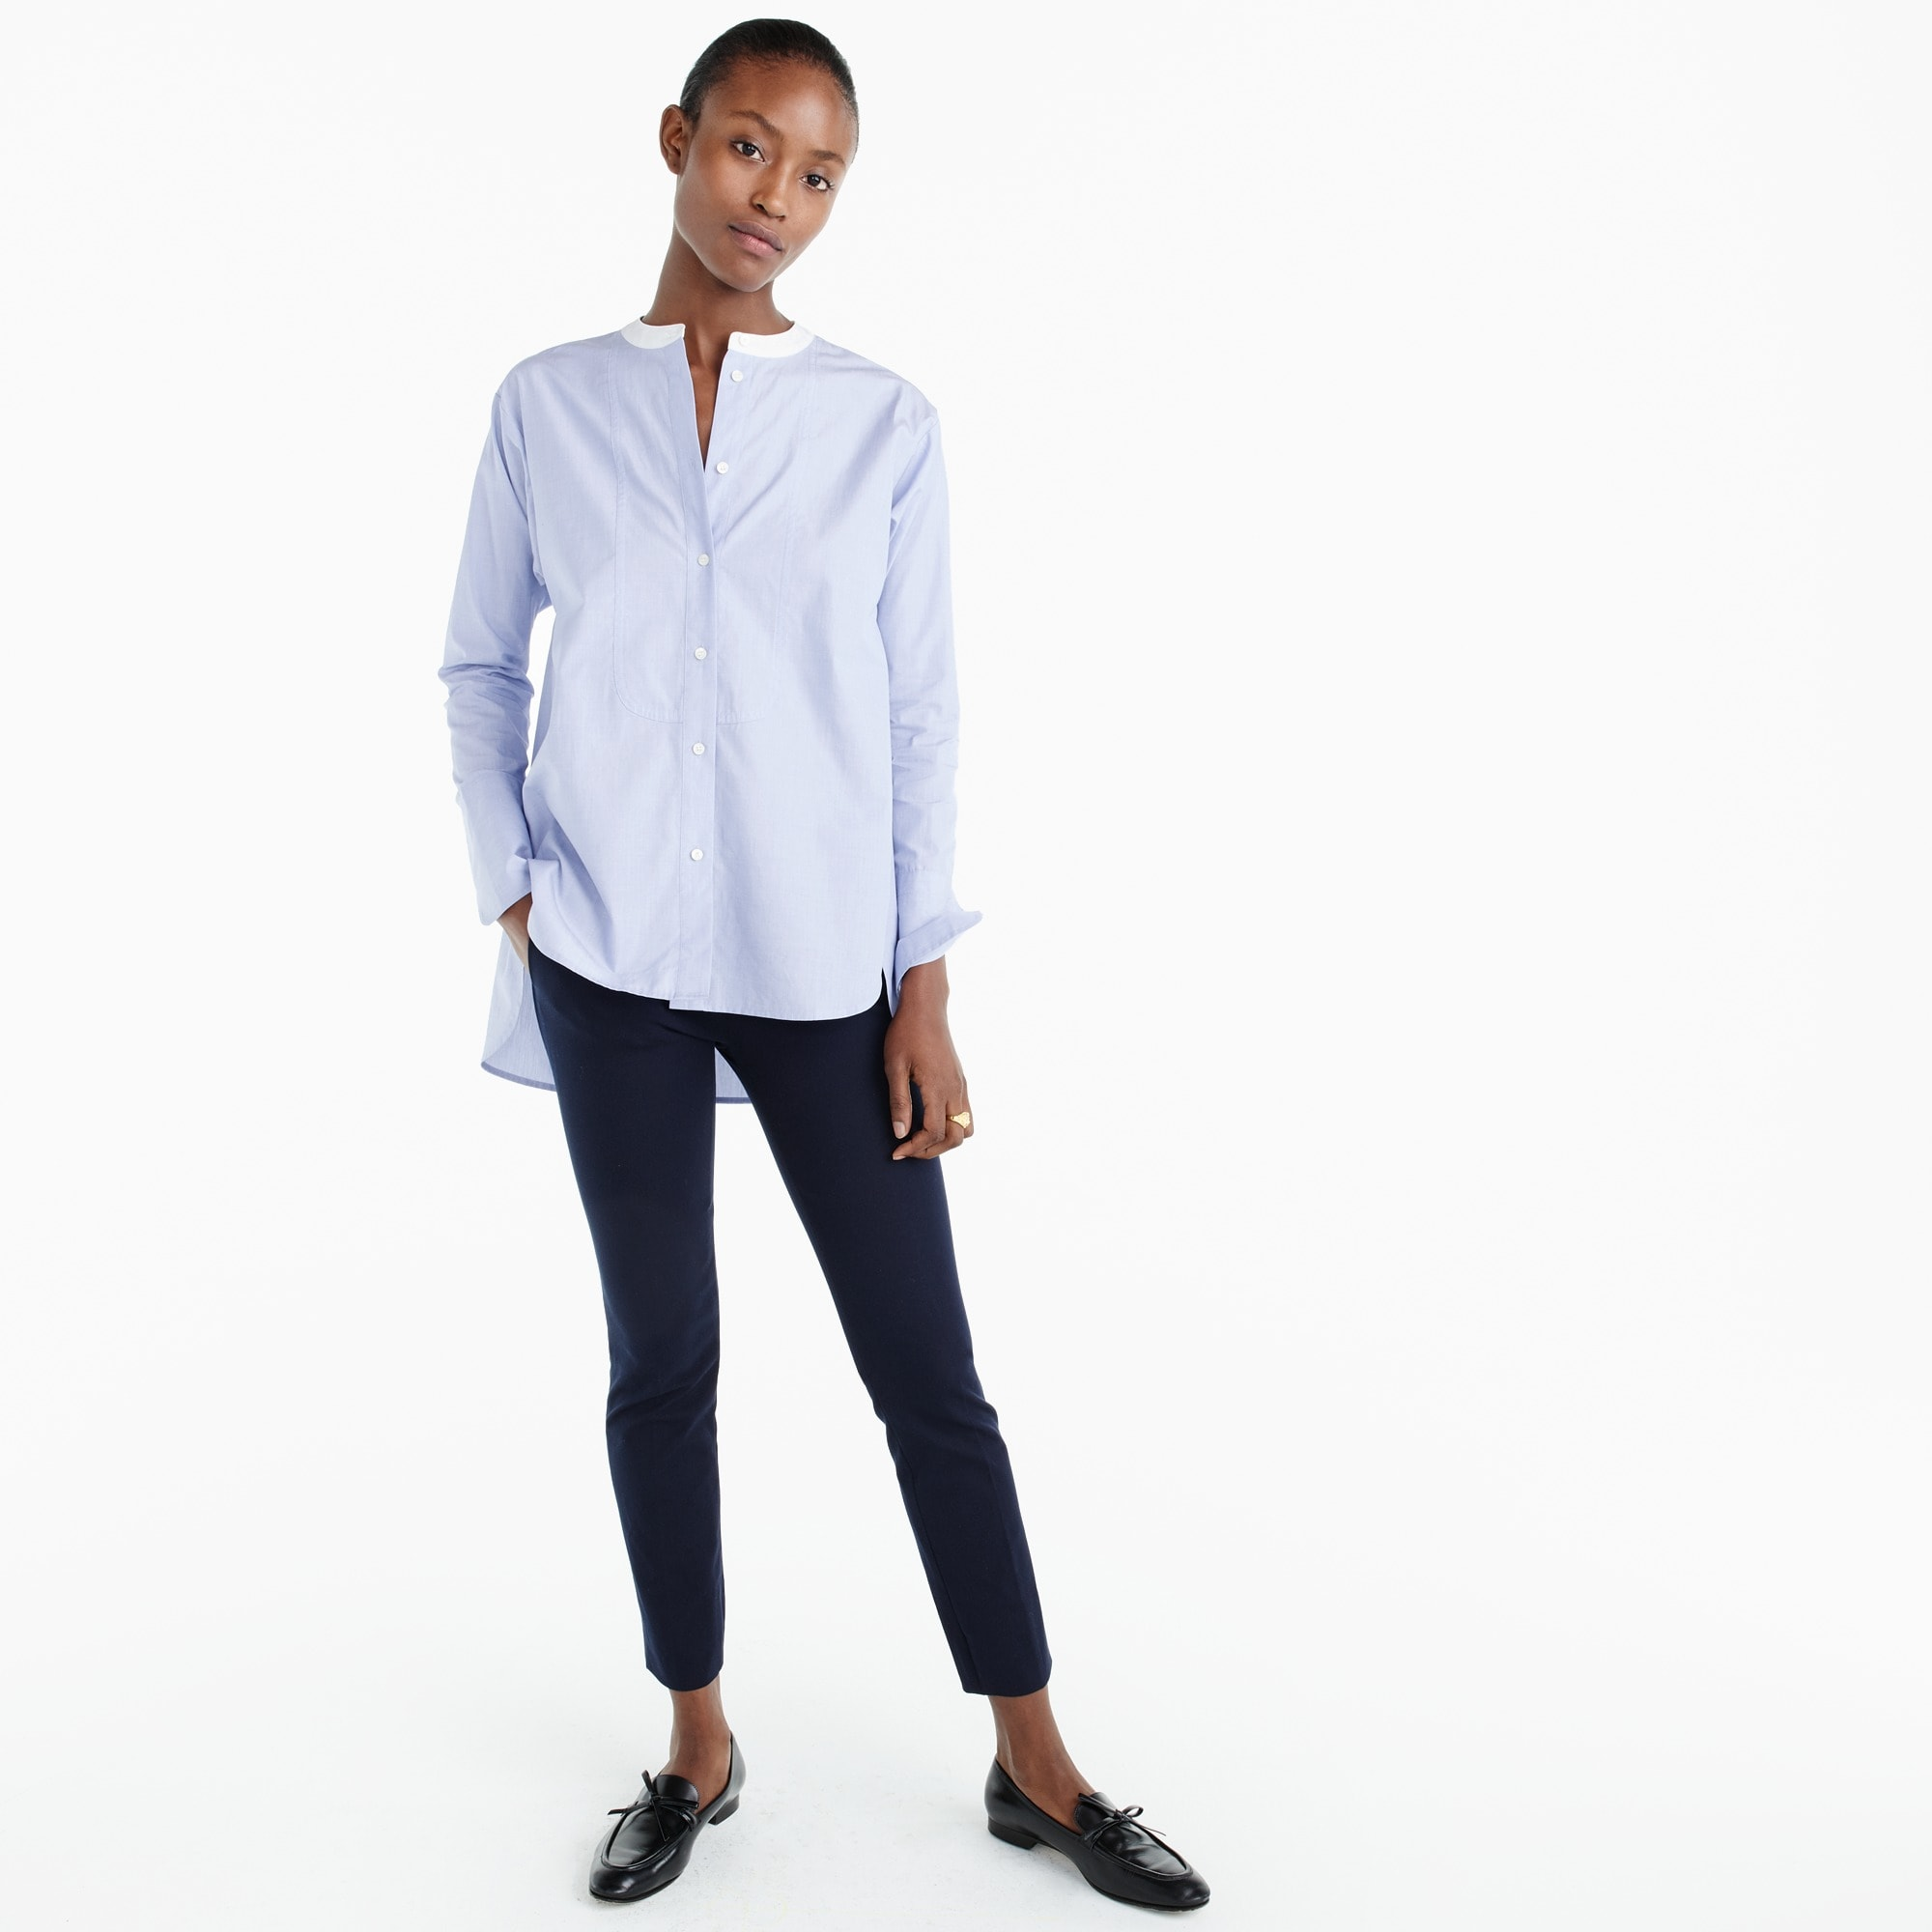 Image 4 for Thomas Mason® for J.Crew collarless shirt